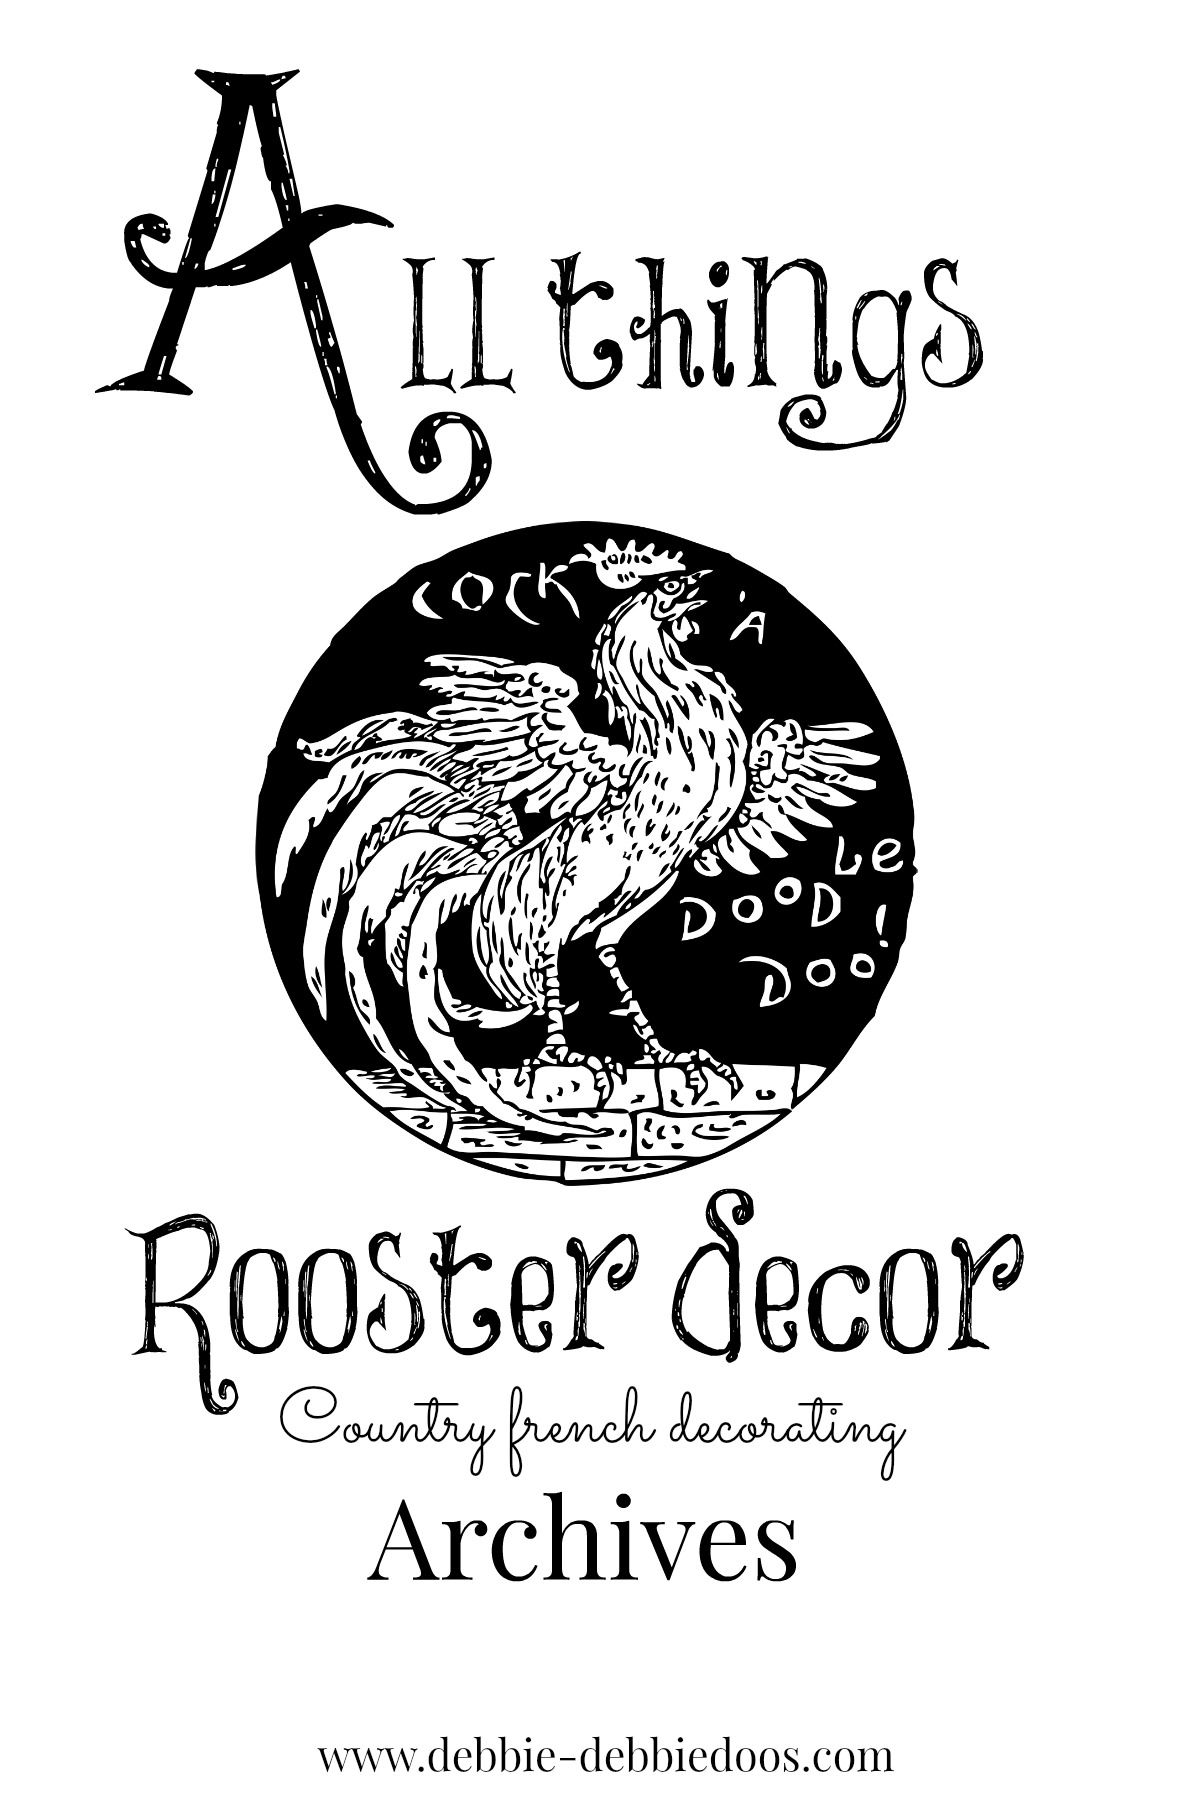 All things Country french decorating and craft ideas with roosters ...